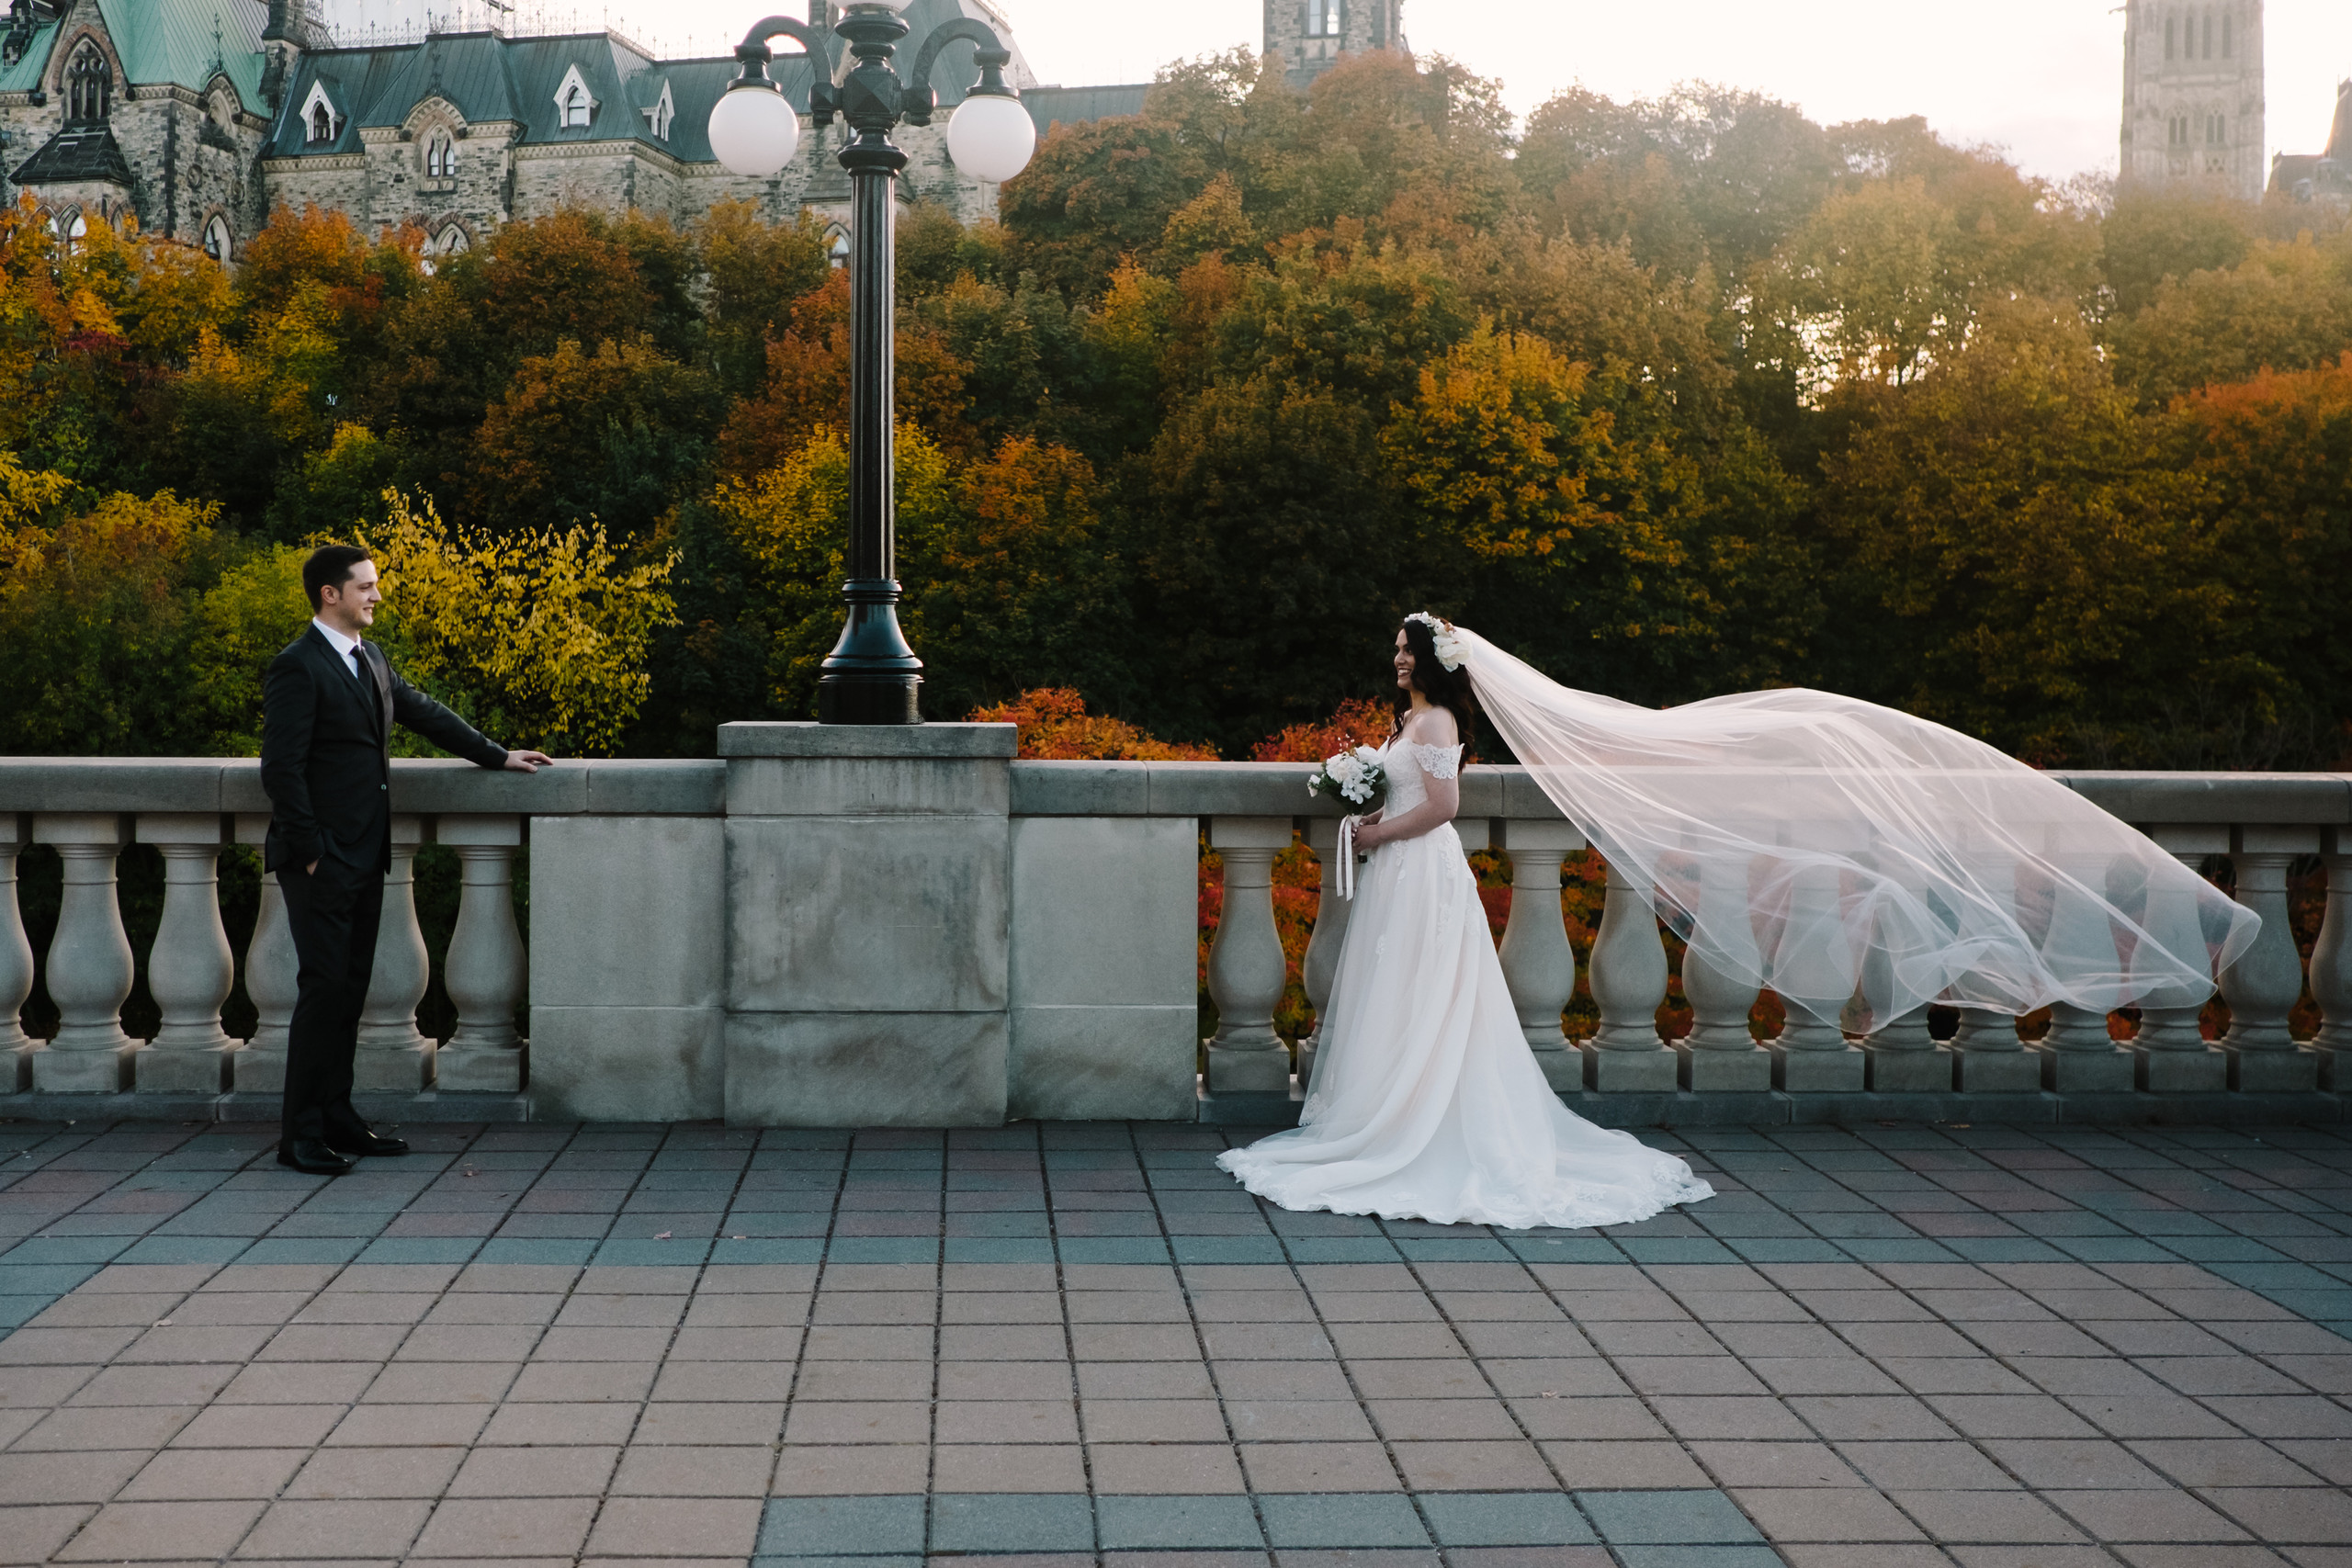 Bride and groom at the Château Laurier with bride's veil blowing in the wind. Photo was taken in the Fall with the changing leaves in the background. Photo by Melanie Mathieu Photography.